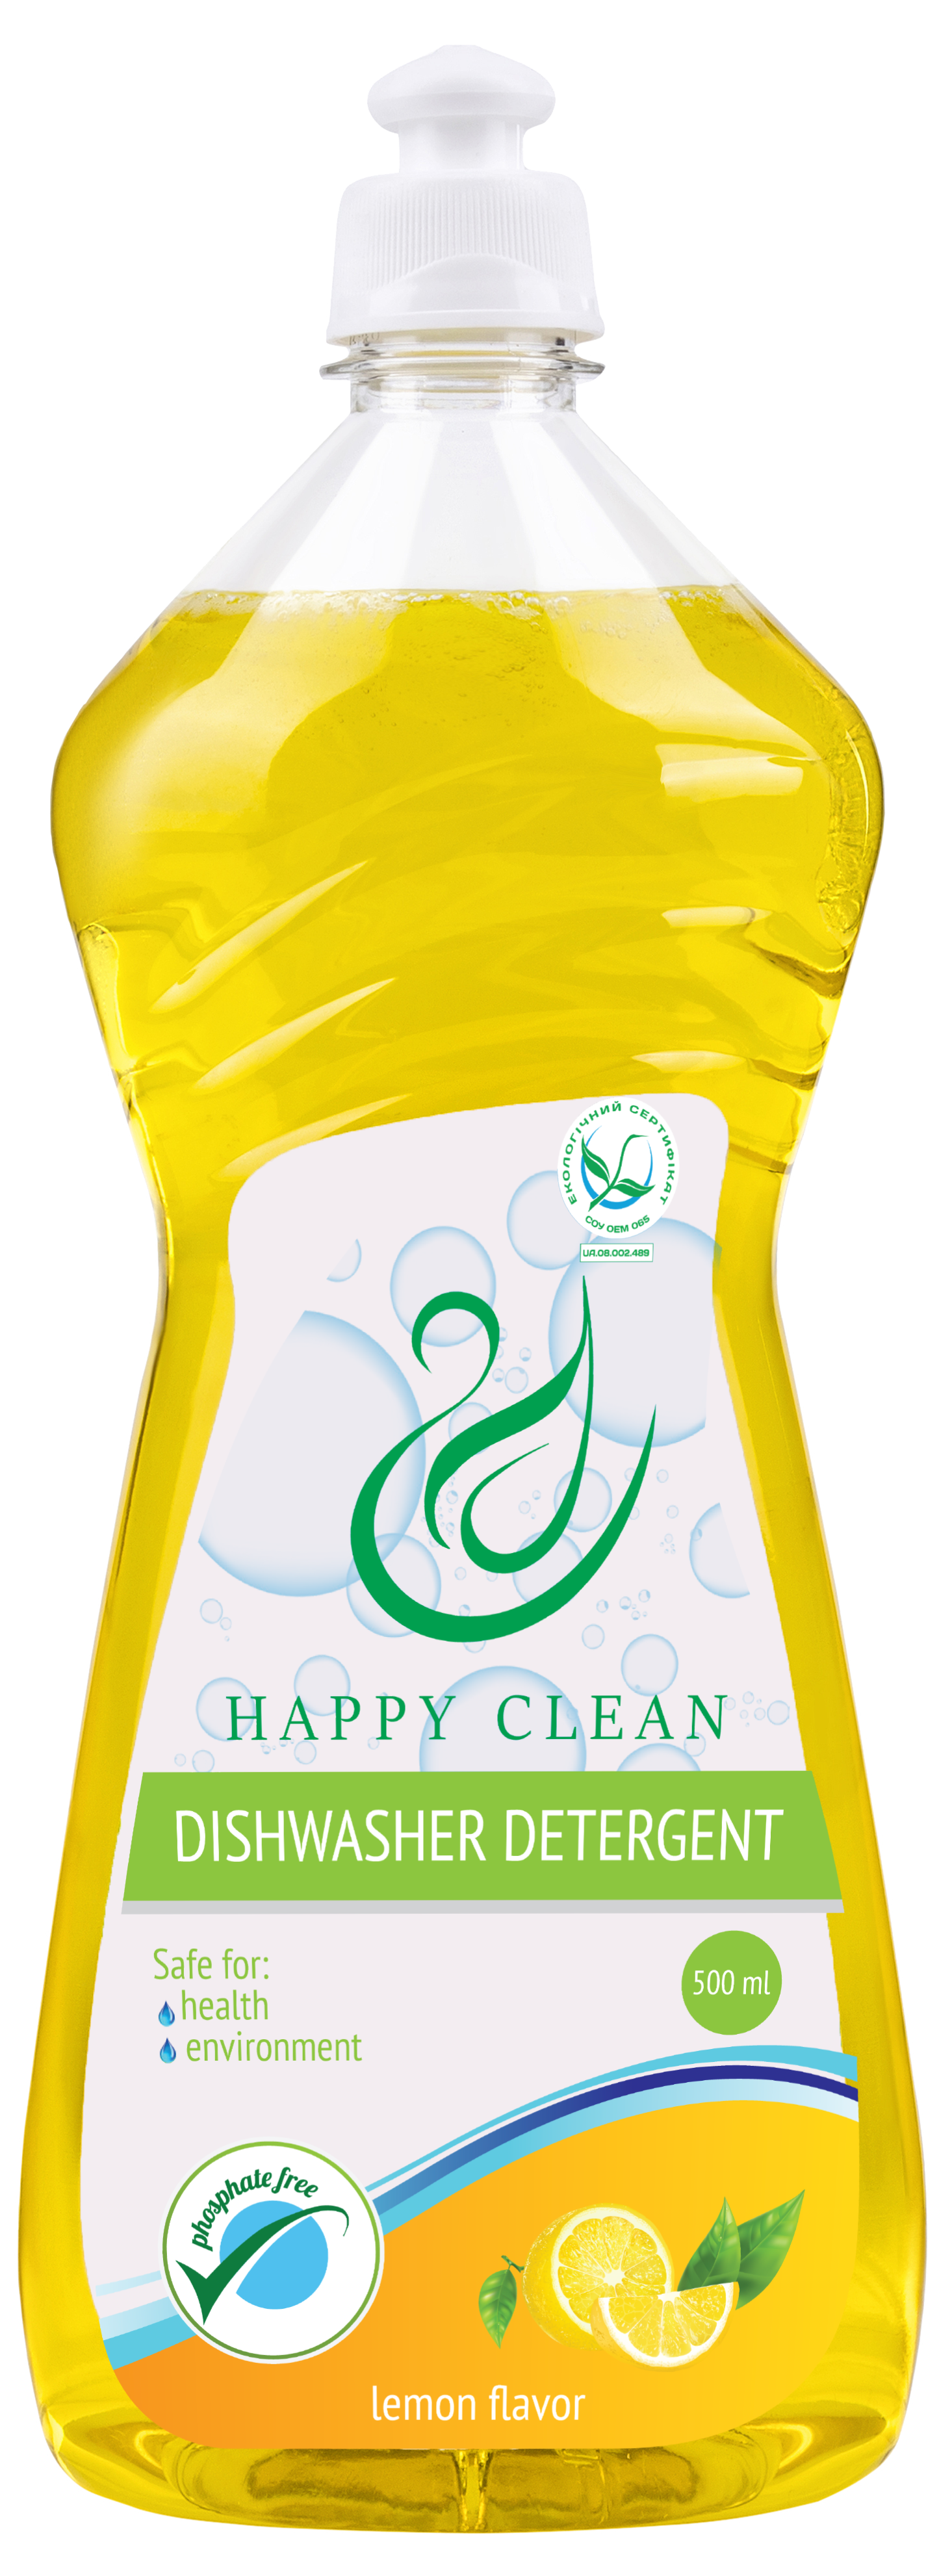 Dishwashing liquid Lemon image